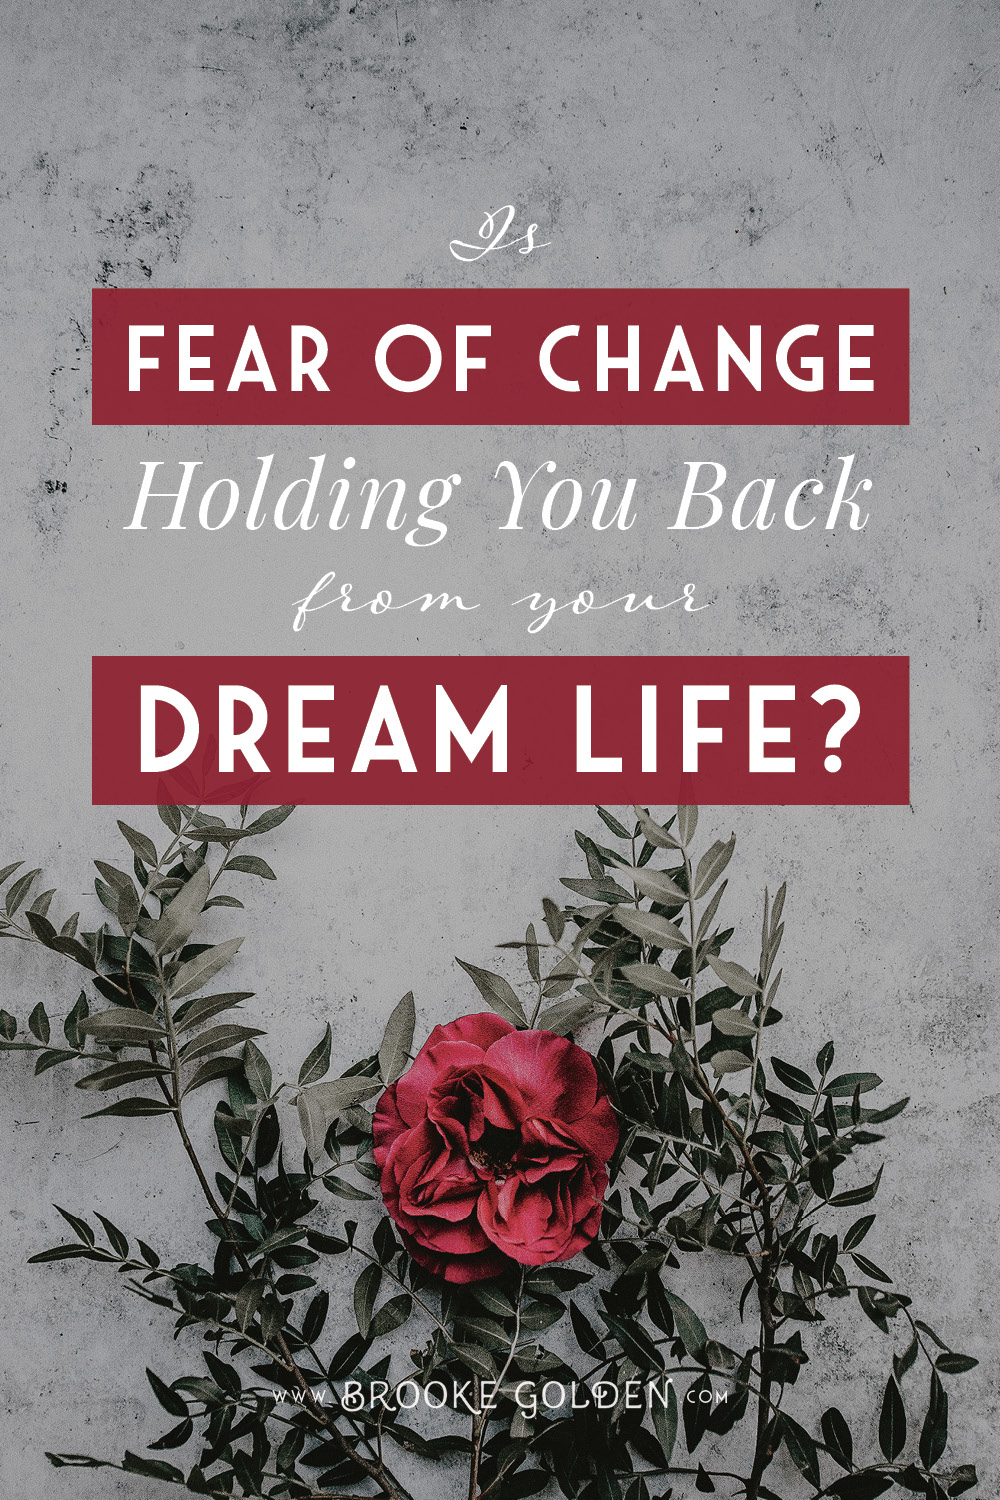 Is the fear of change holding you back from the life of your dreams?